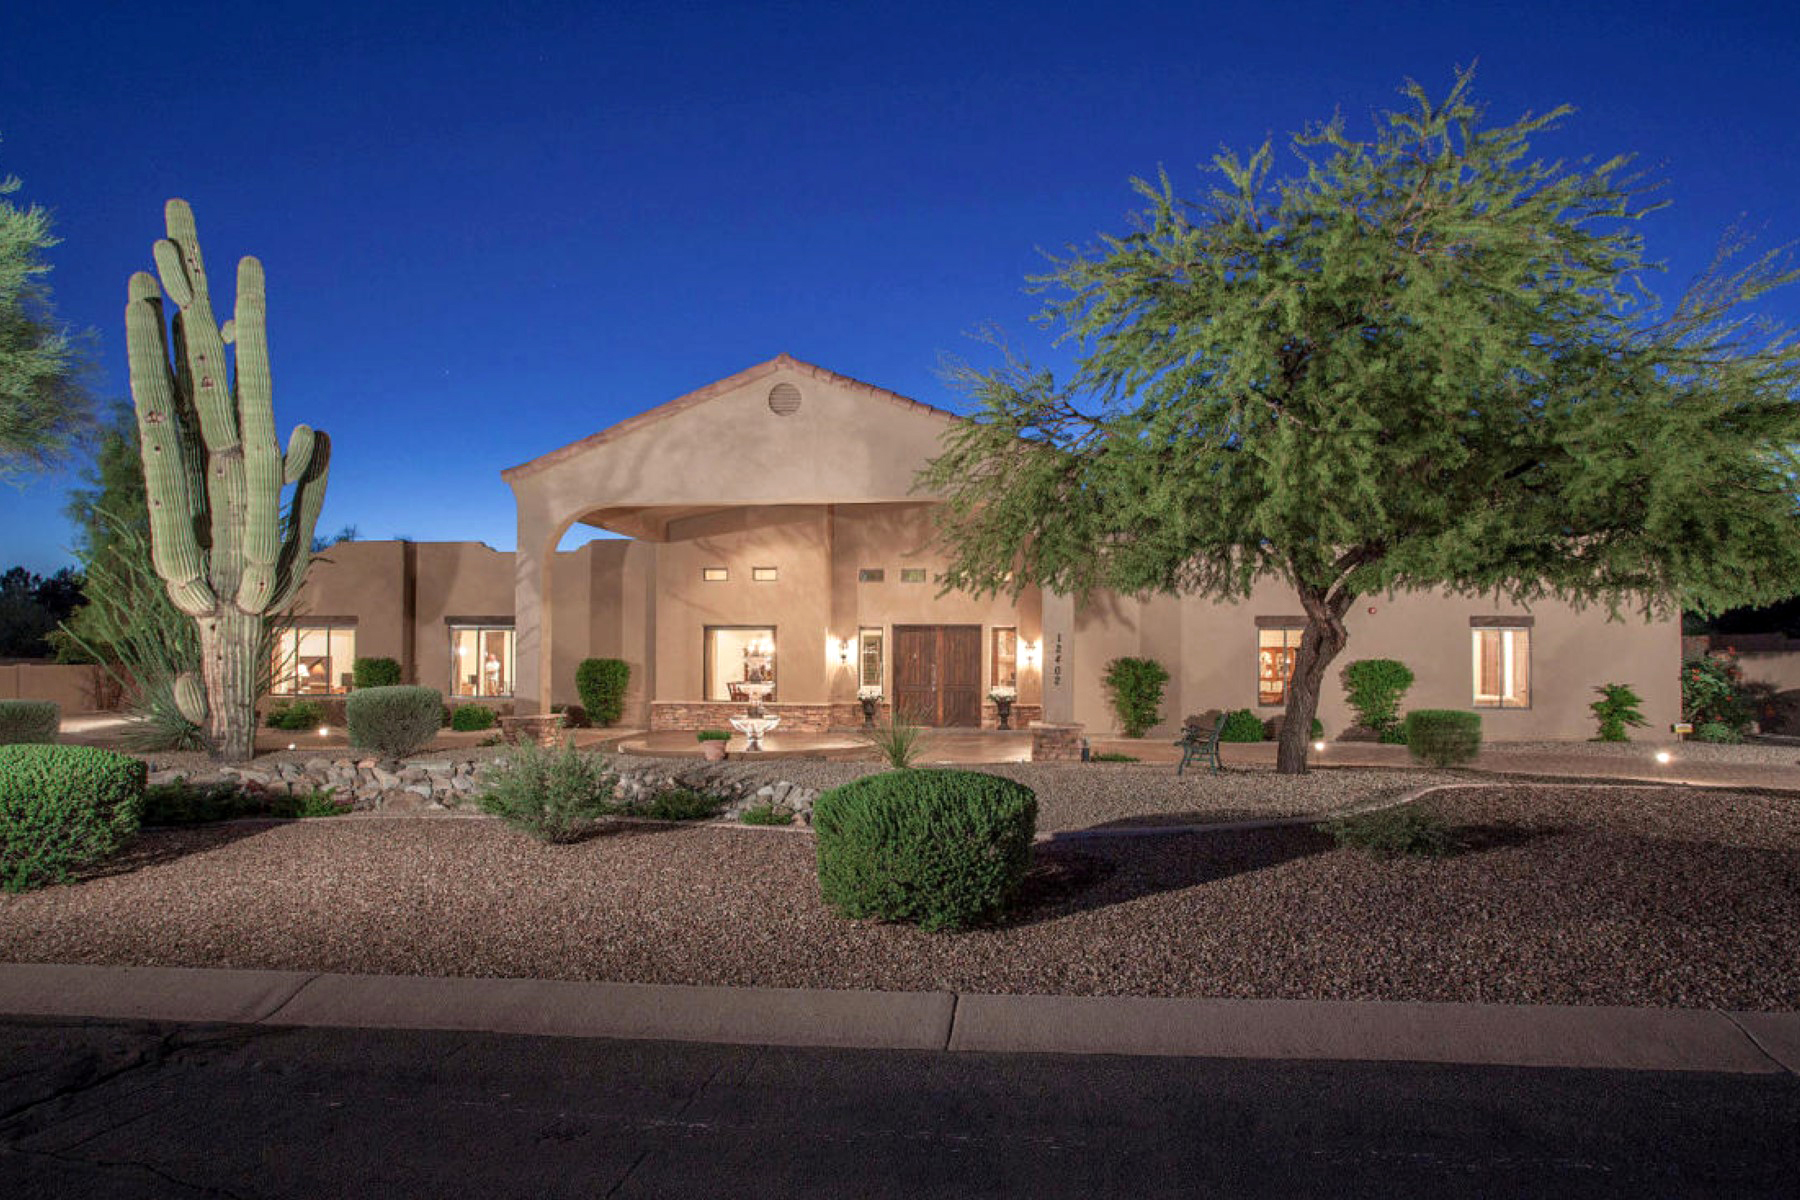 Single Family Home for Sale at Casual Elegance in Cactus Corridor 12402 N 102nd Street Scottsdale, Arizona 85260 United States